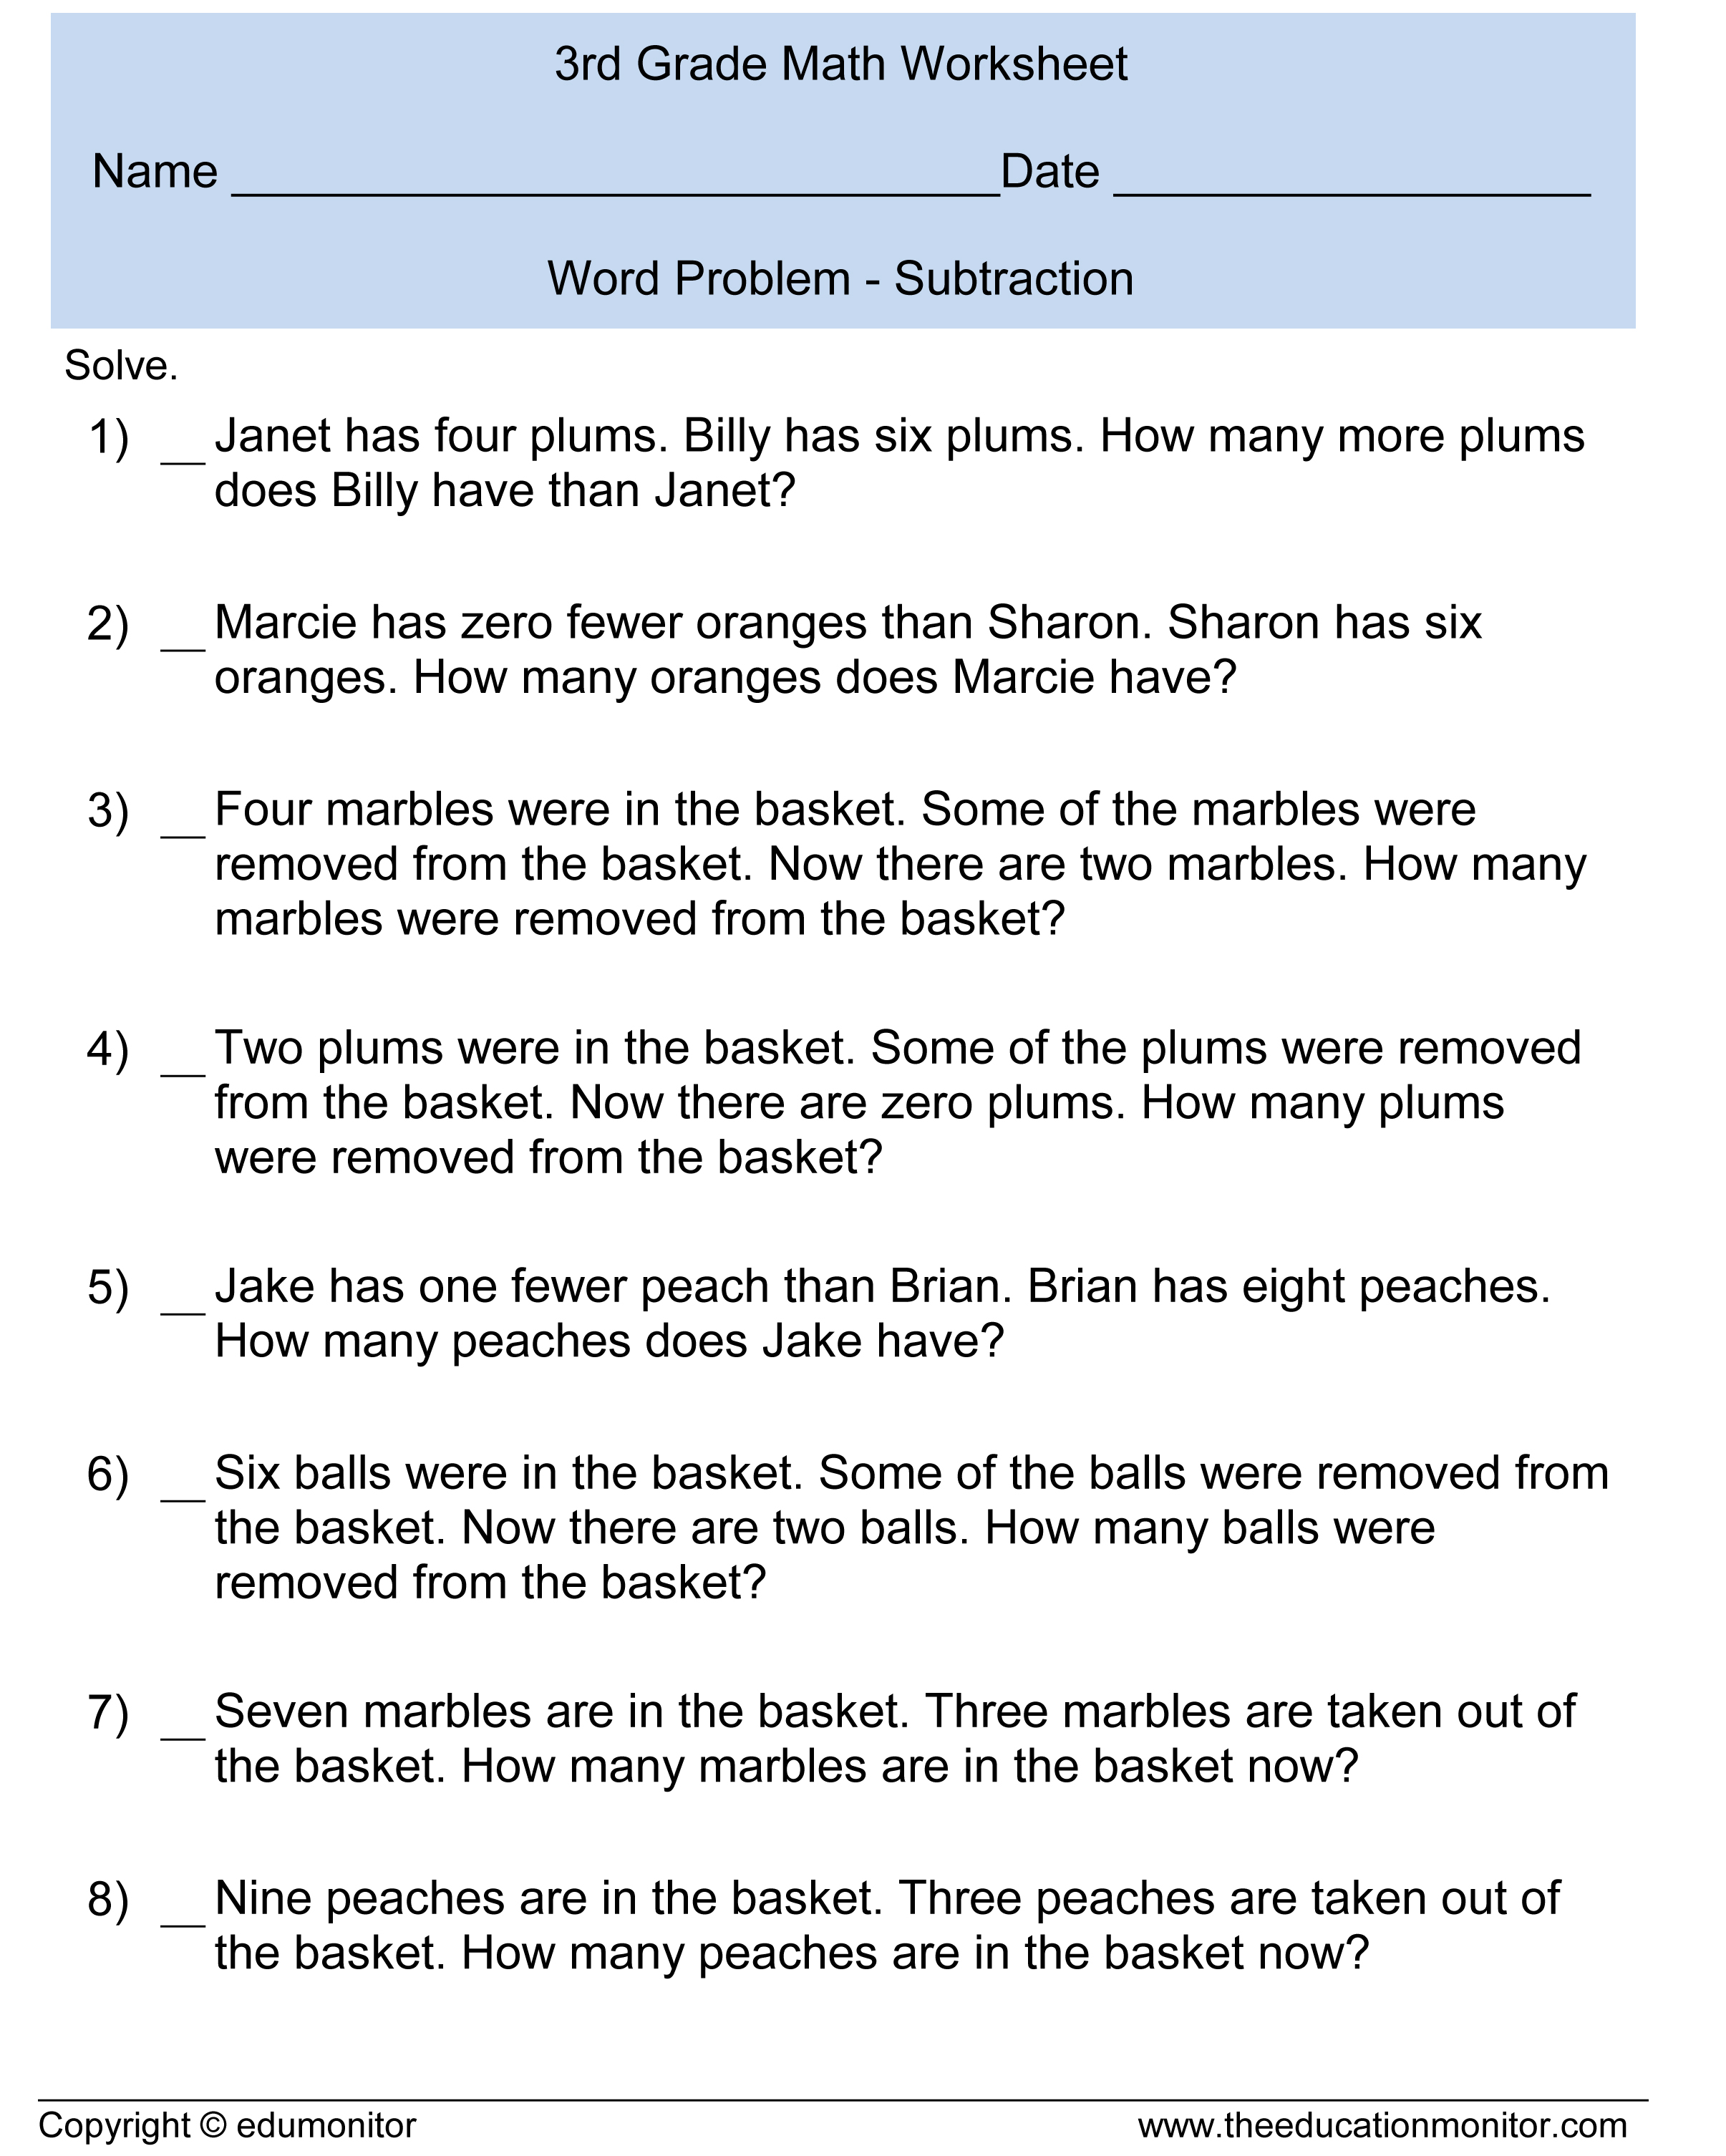 Worksheet Printable Word Problems free math worksheets word problems fractions worksheet for 3rd grade fraction adding and